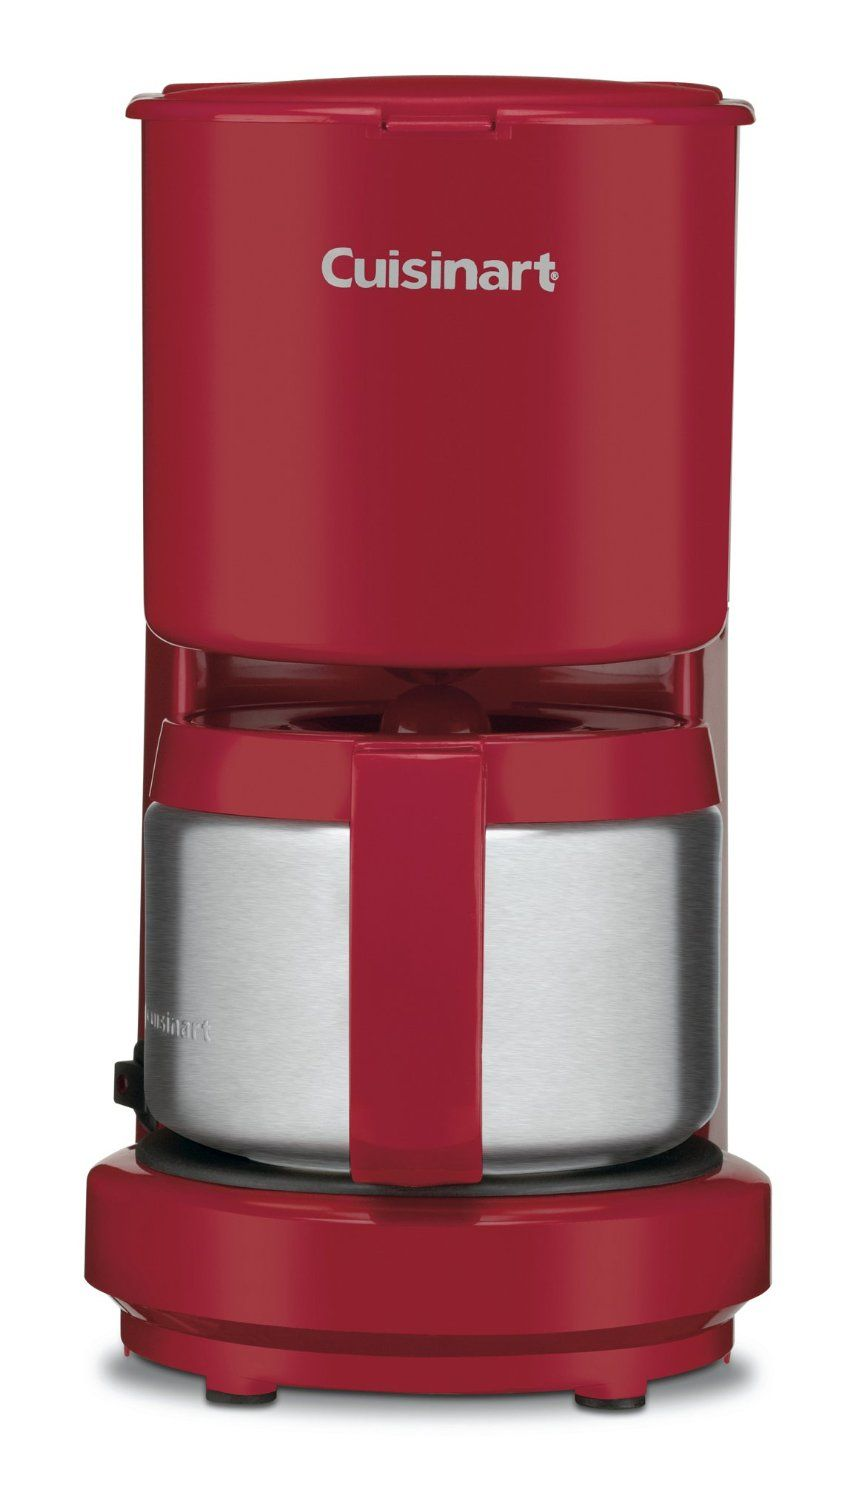 Amazon Com Cuisinart Dcc 450r 4 Cup Coffeemaker With Stainless Steel Carafe Red Kitchen Dining Coffee Maker 4 Cup Coffee Maker Red Coffee Maker